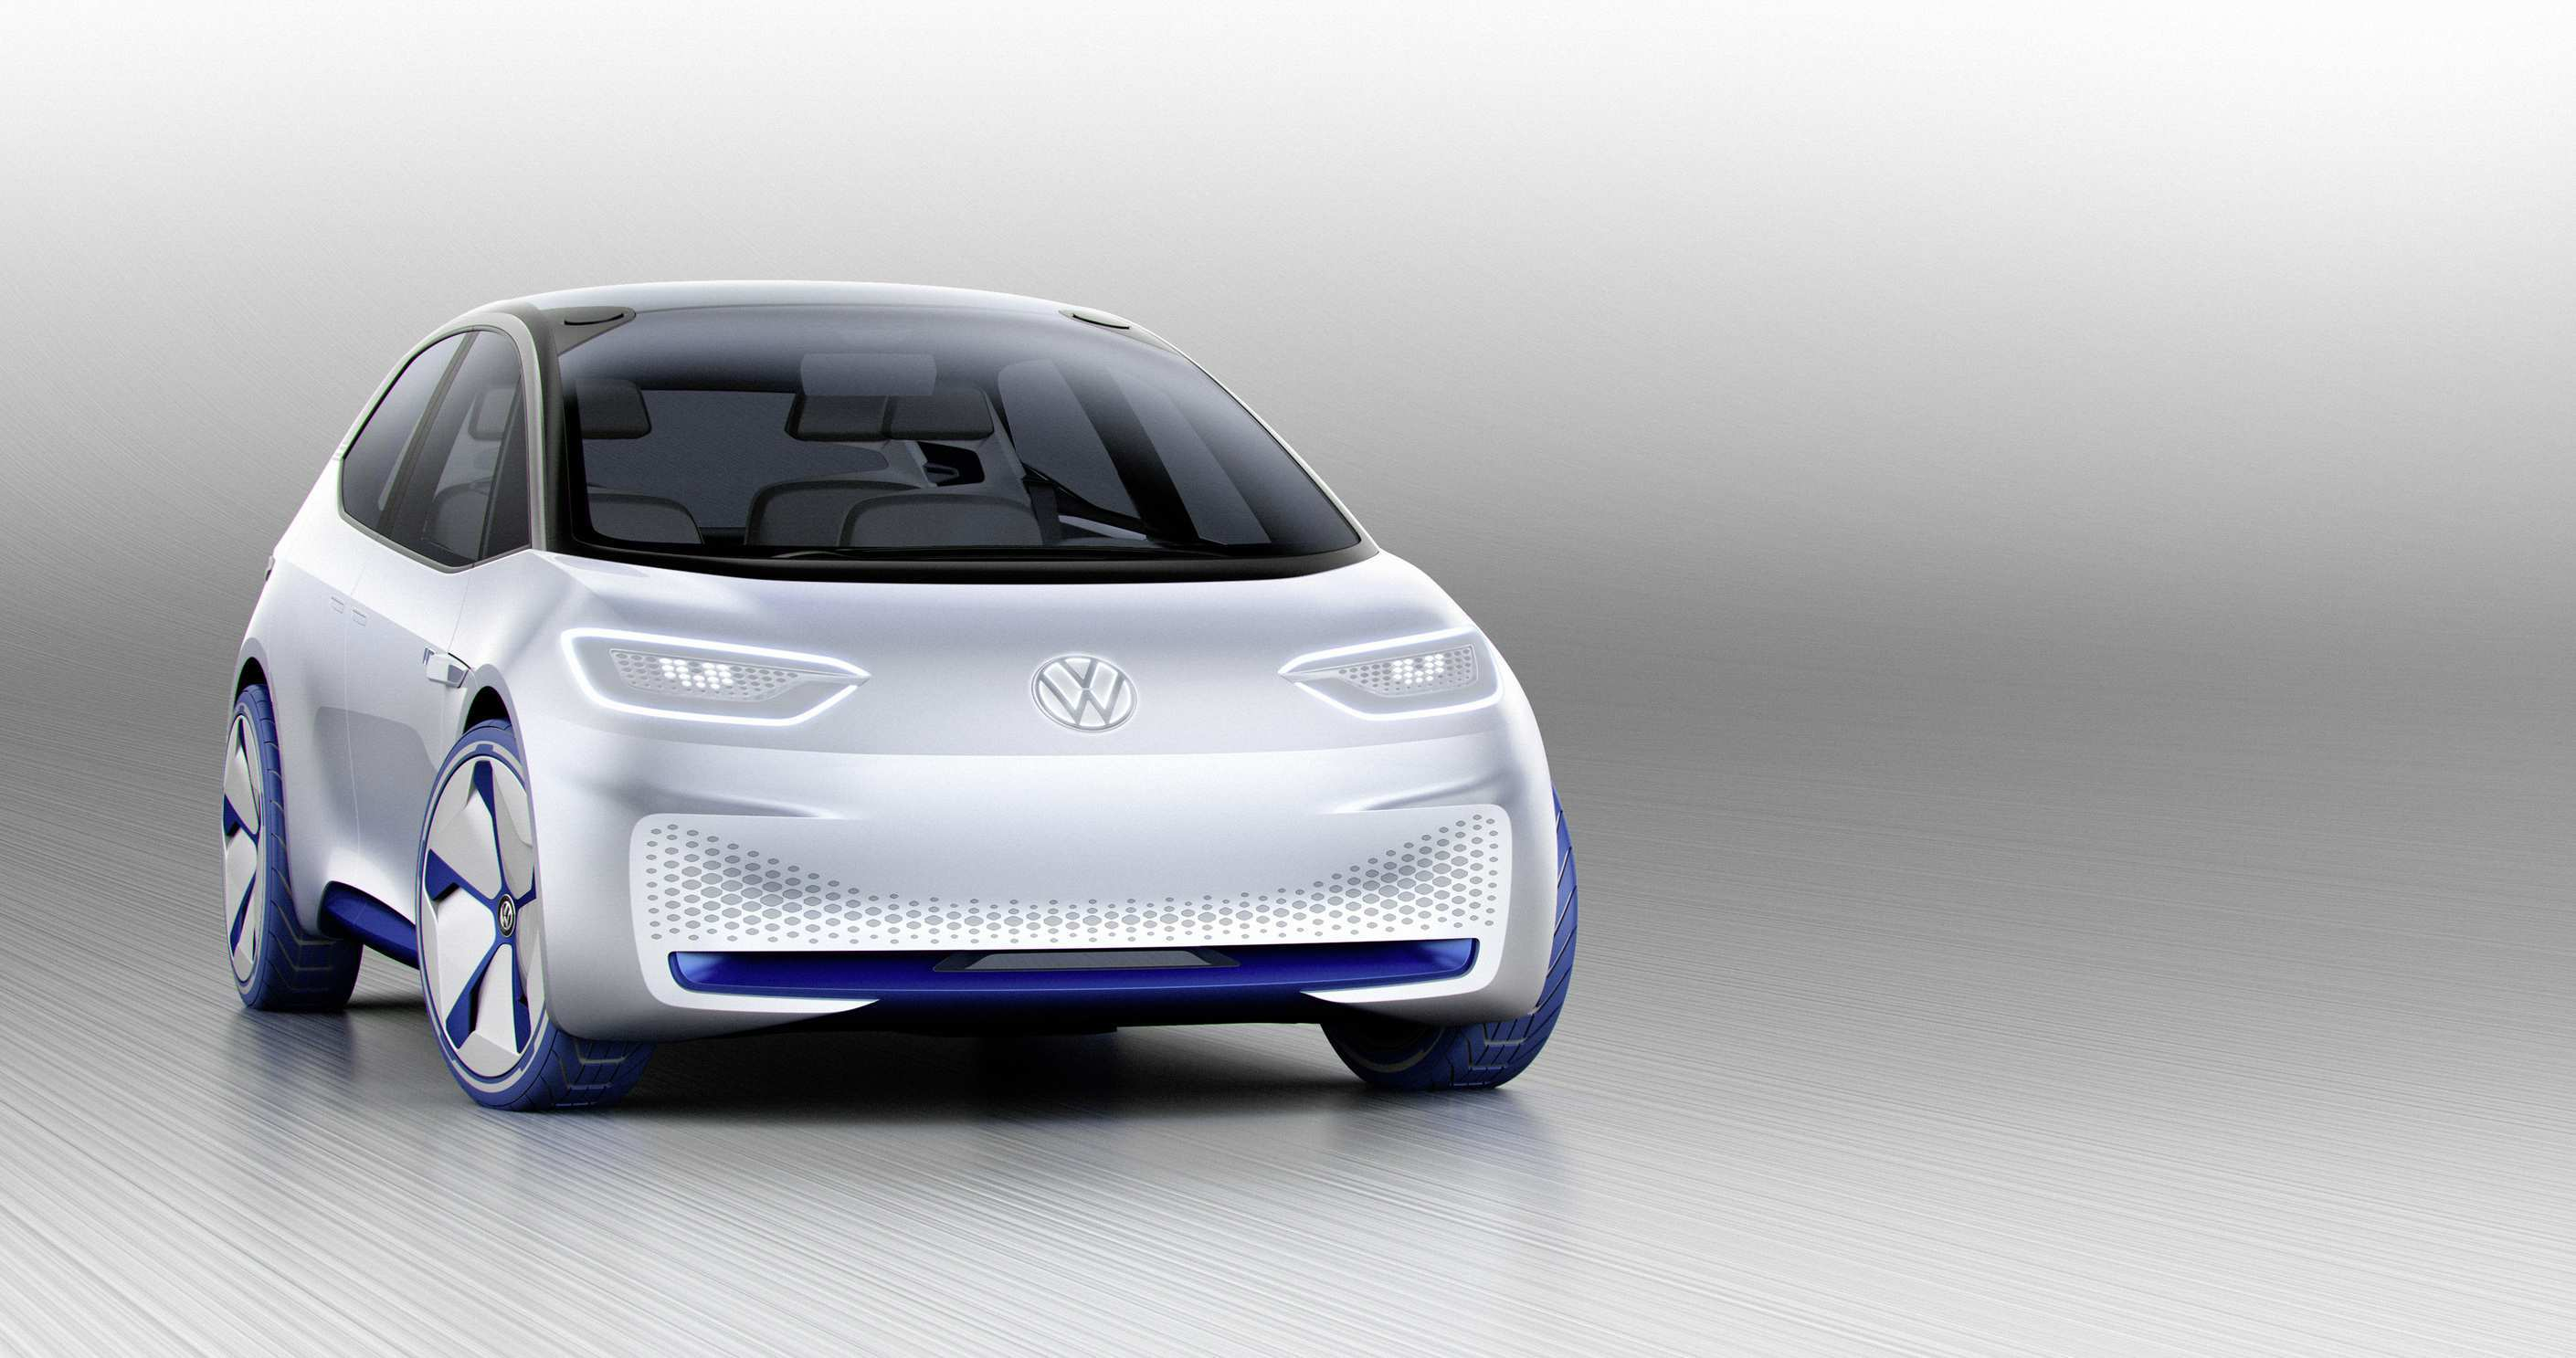 70 All New Volkswagen New Conceptljahr 2020 Pictures for Volkswagen New Conceptljahr 2020